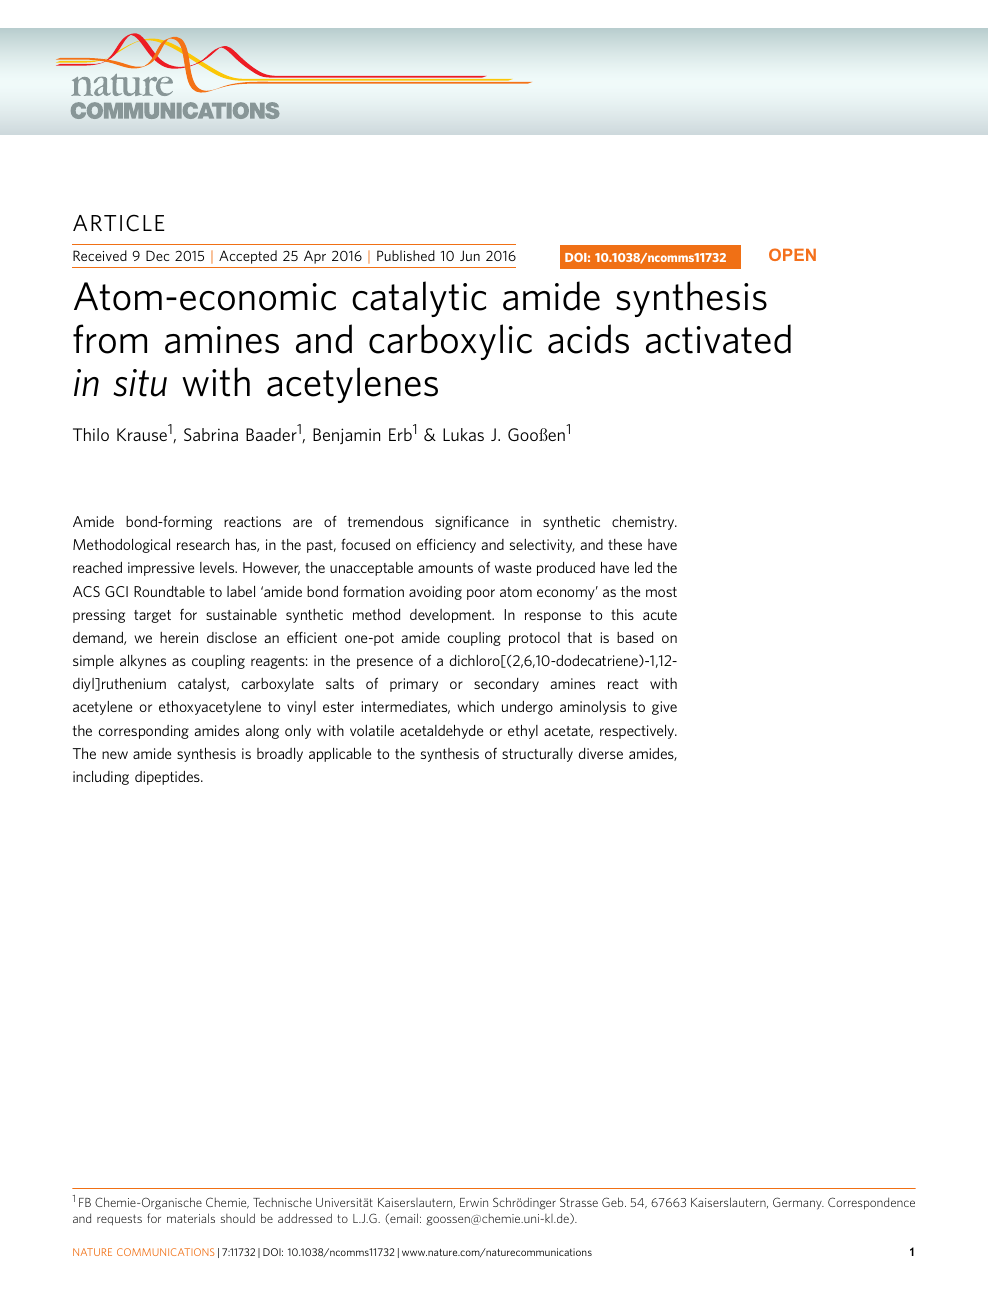 Atom-economic catalytic amide synthesis from amines and